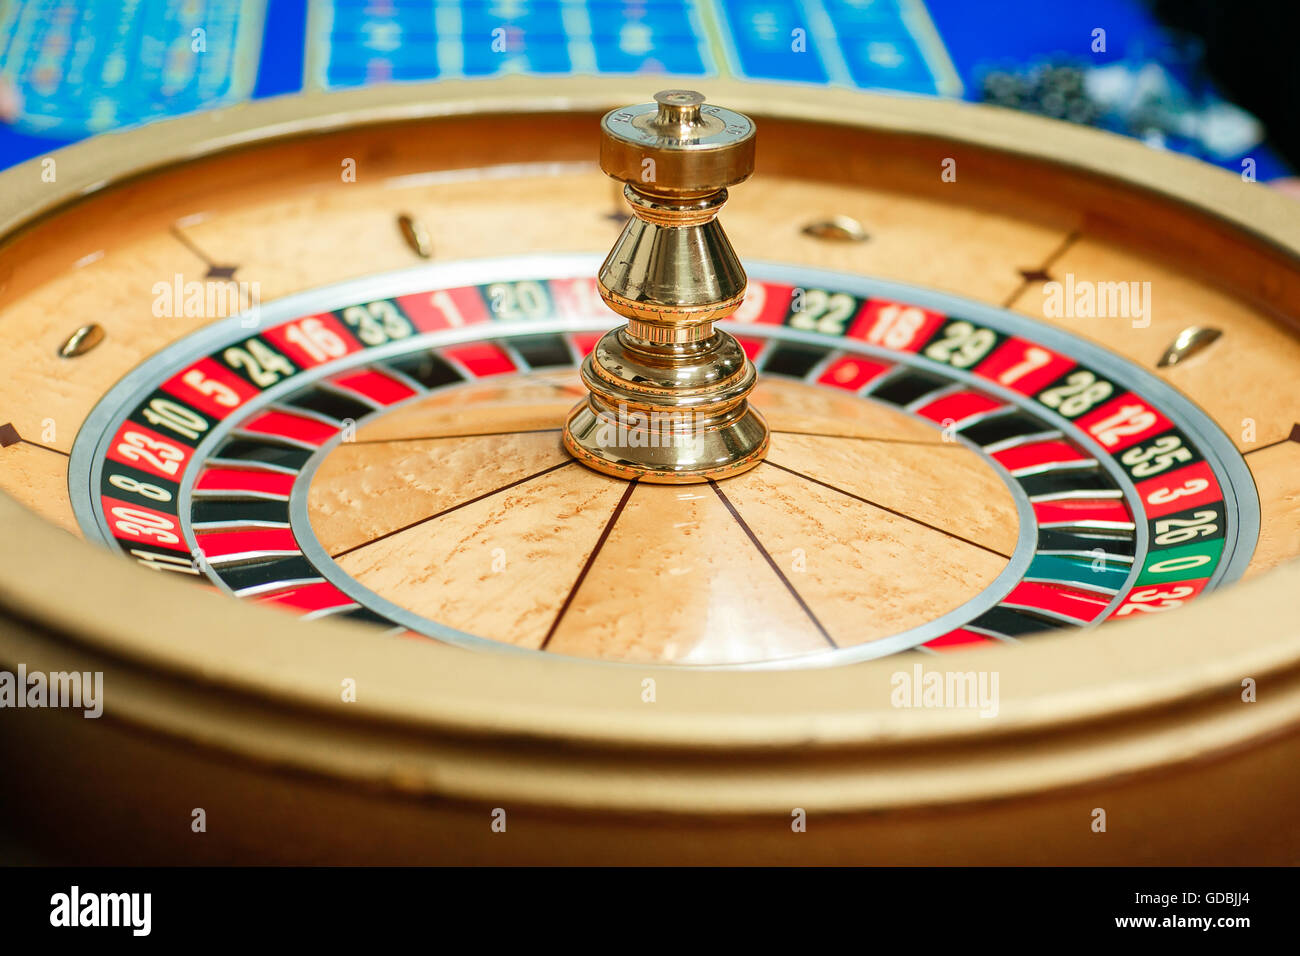 green roulette table with colored chips ready to play. - Stock Image